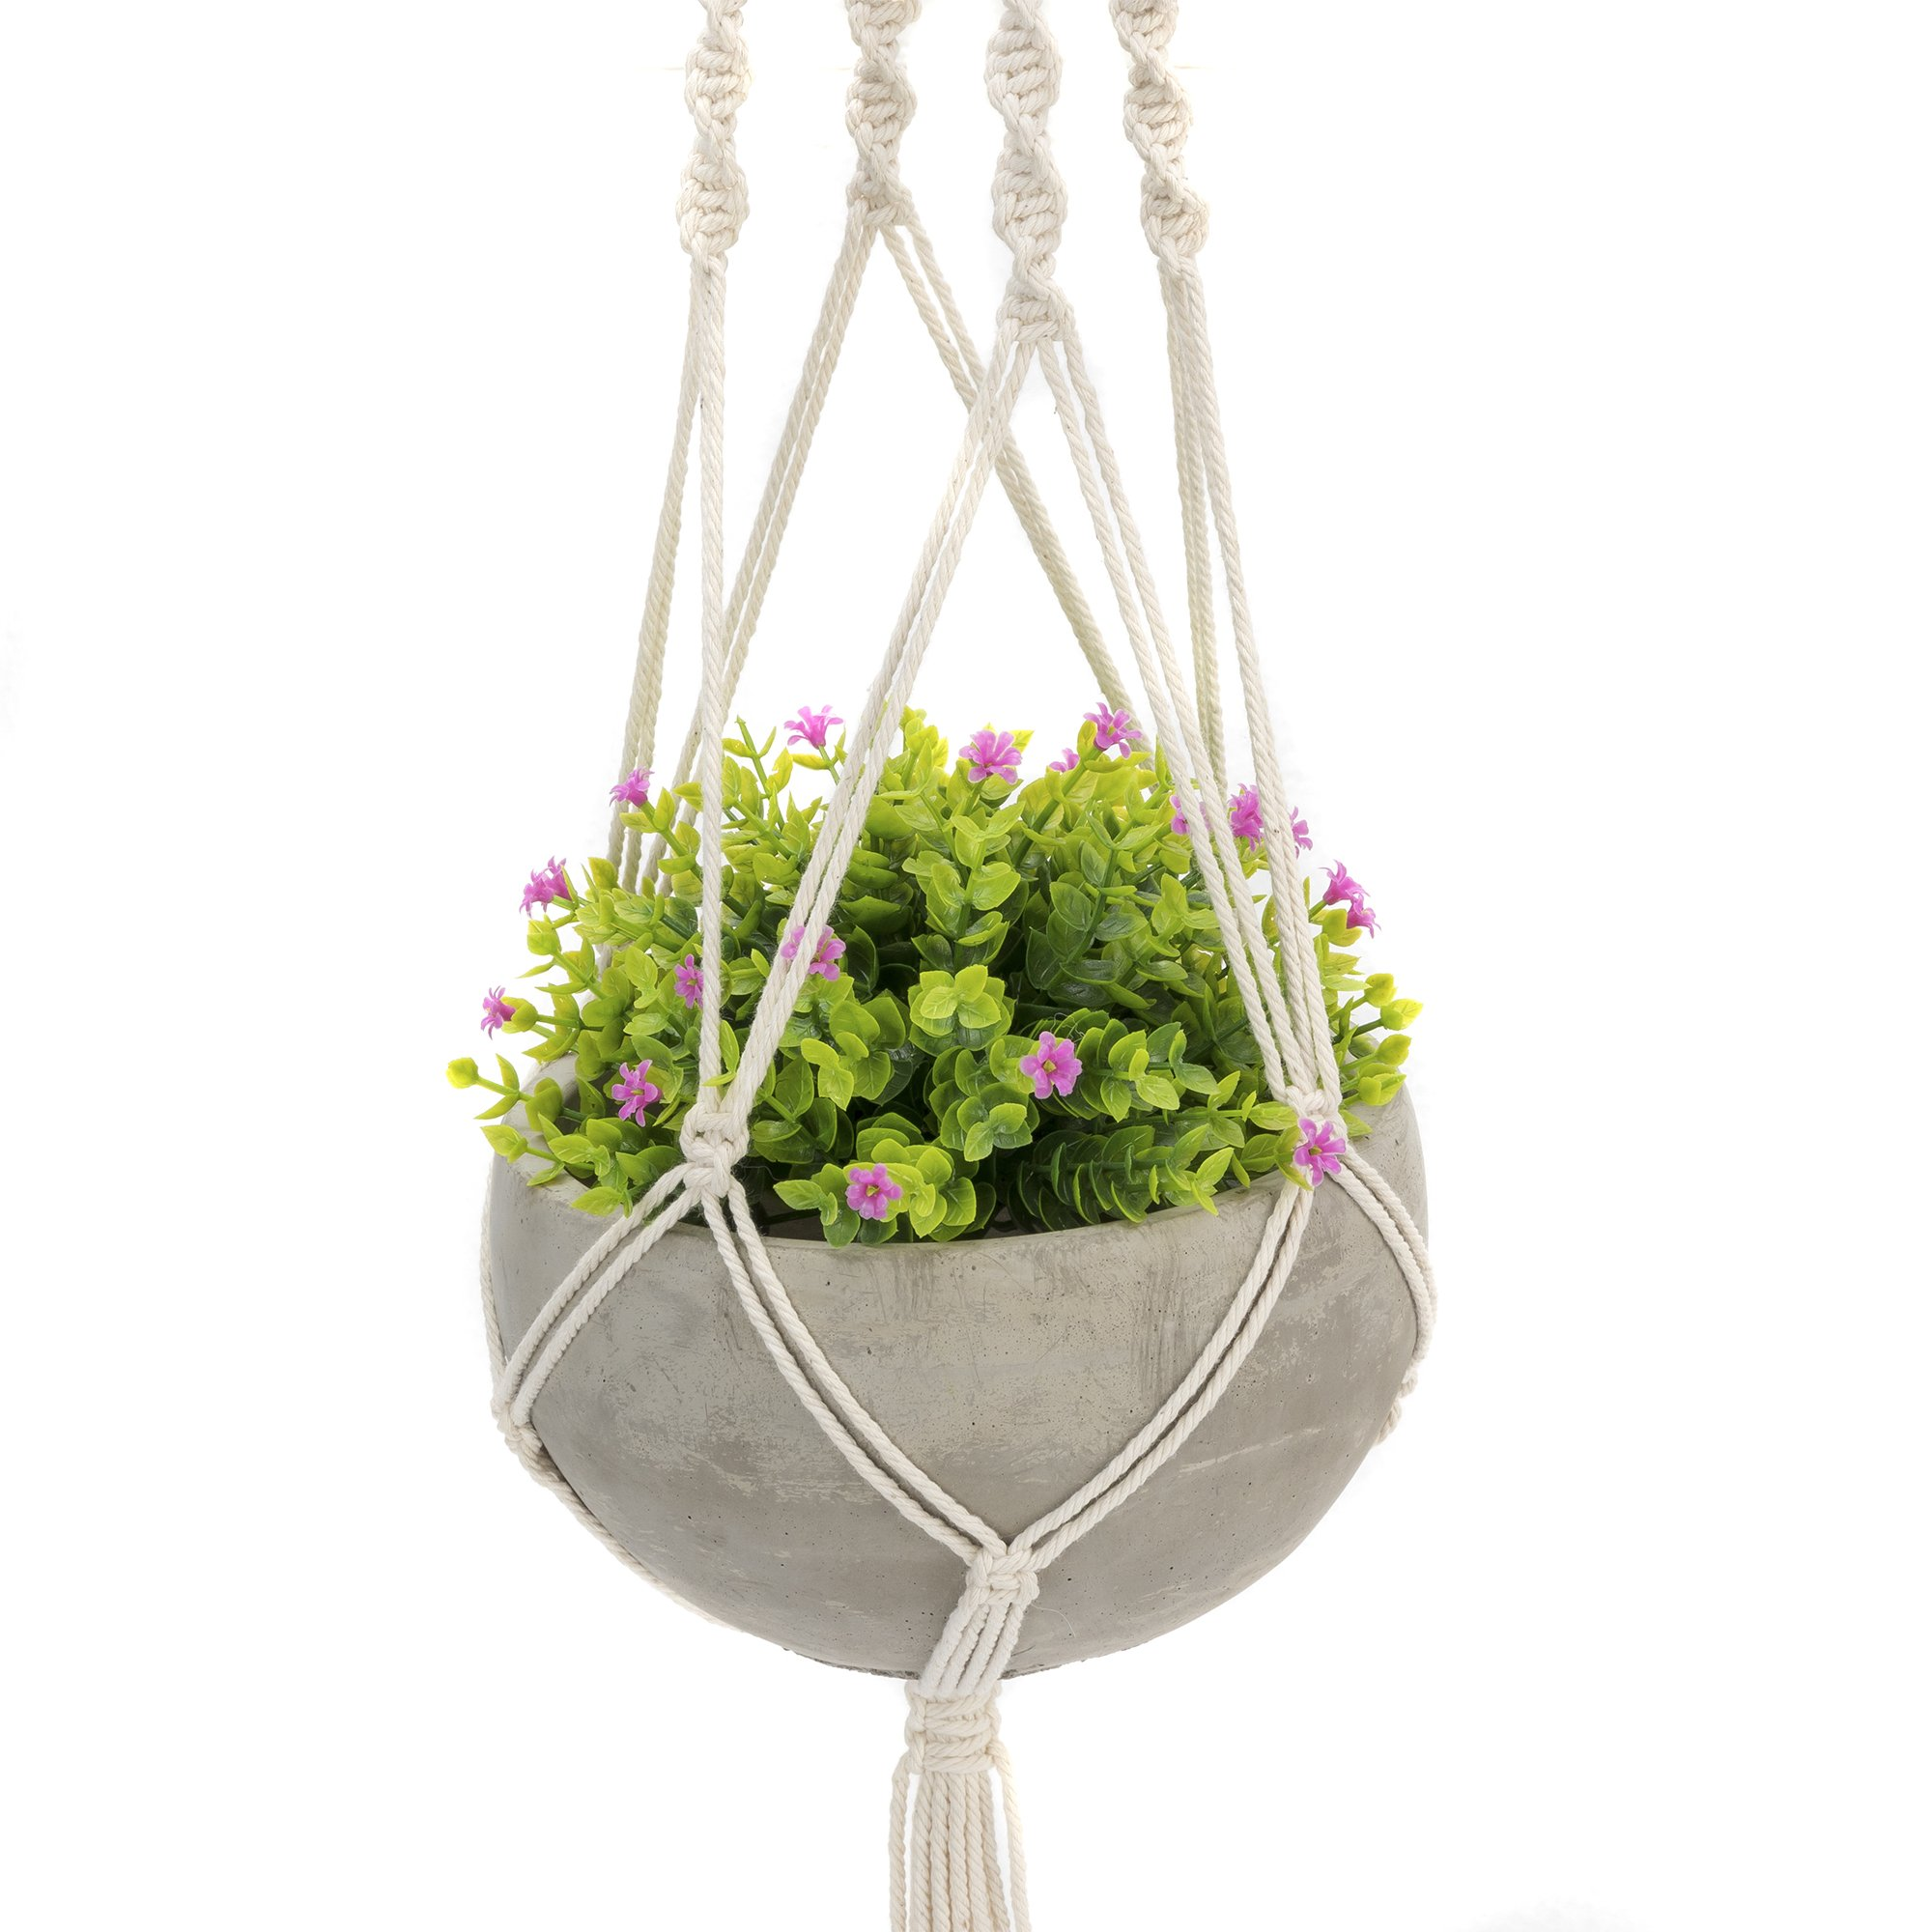 Nattol Hanging Succulent Planter, Cement Planter Includes Handmade Weave Macramé for Easy Design and Beautiful Accents